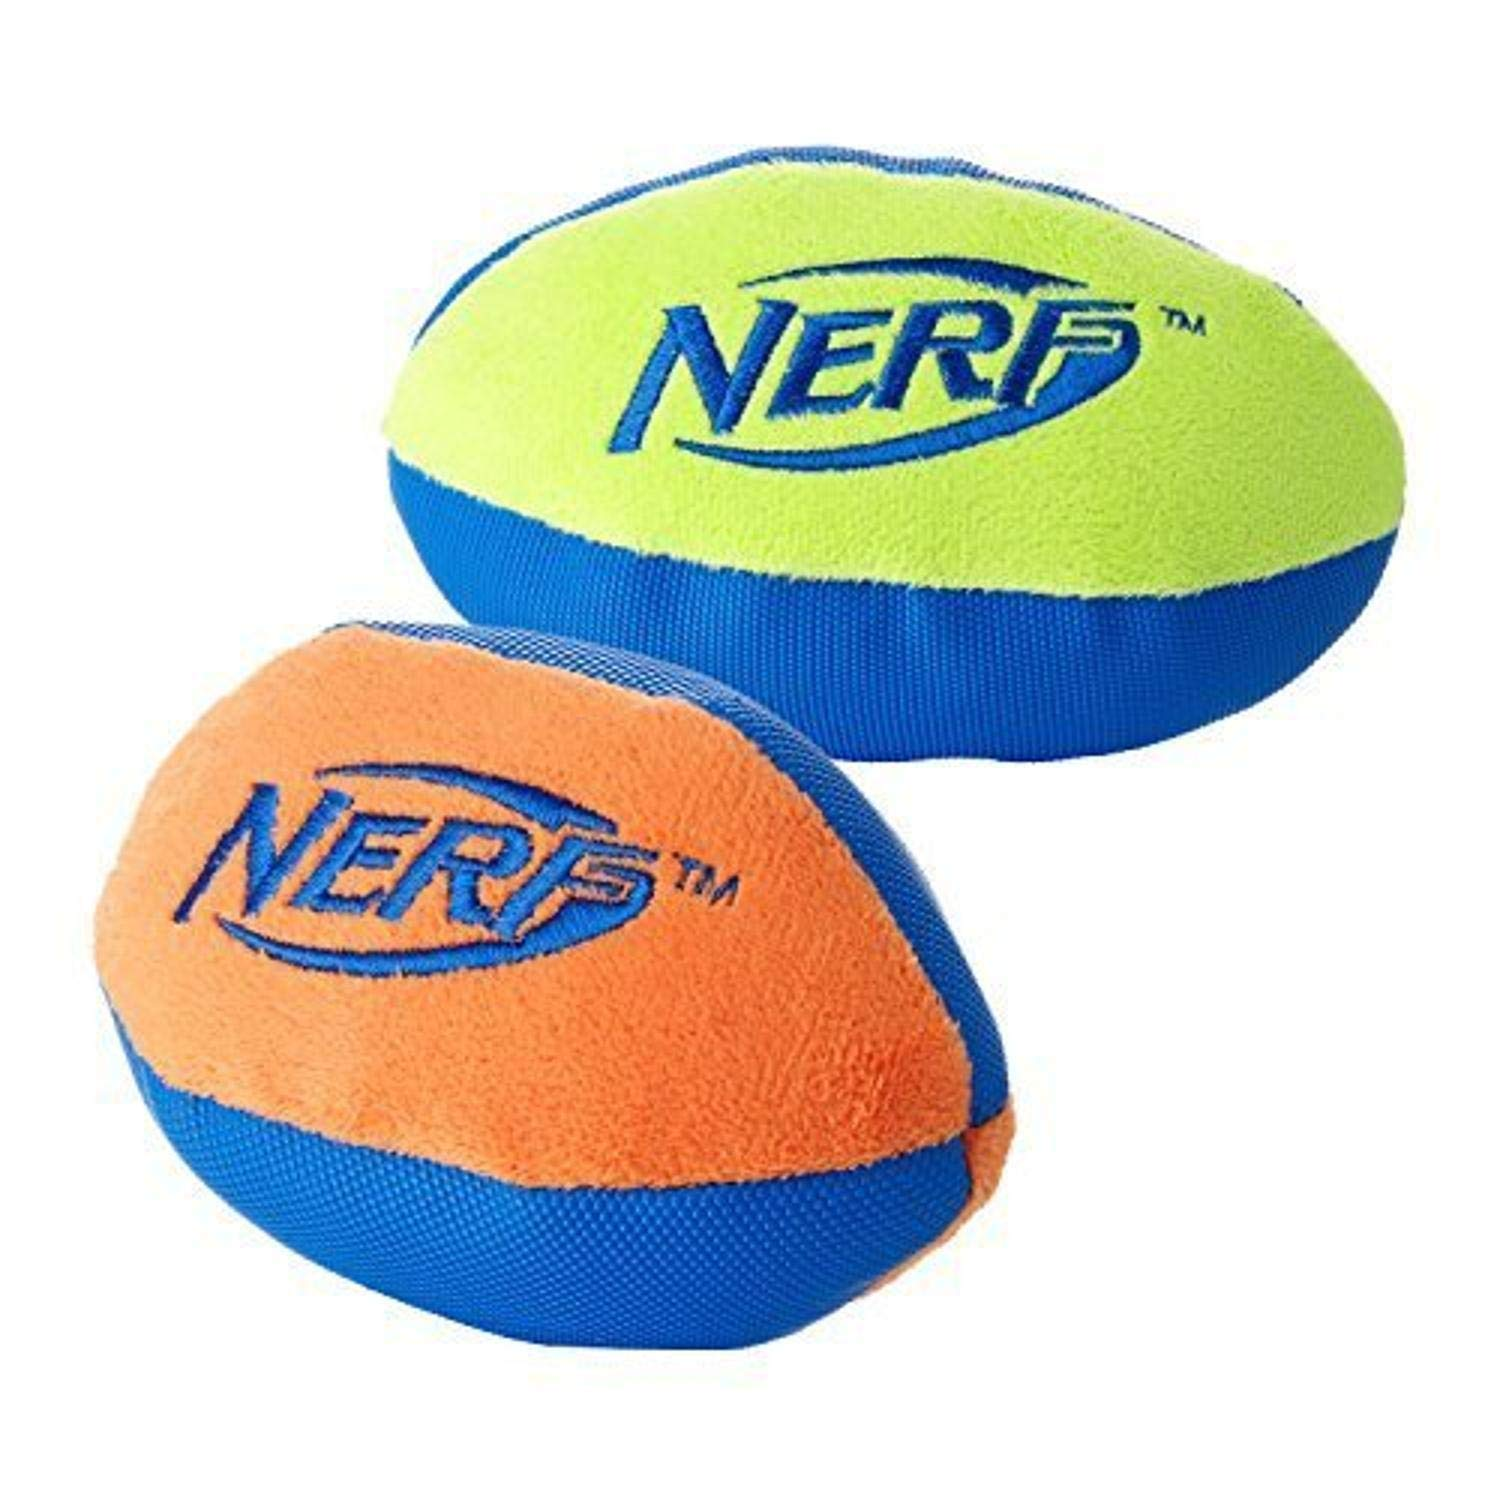 Nerf Dog Trackshot Football Dog Toy, Lightweight, Durable and Water Resistant, 7 Inches for Medium/Large Breeds, Two Pack, Green/Blue and Orange/Blue